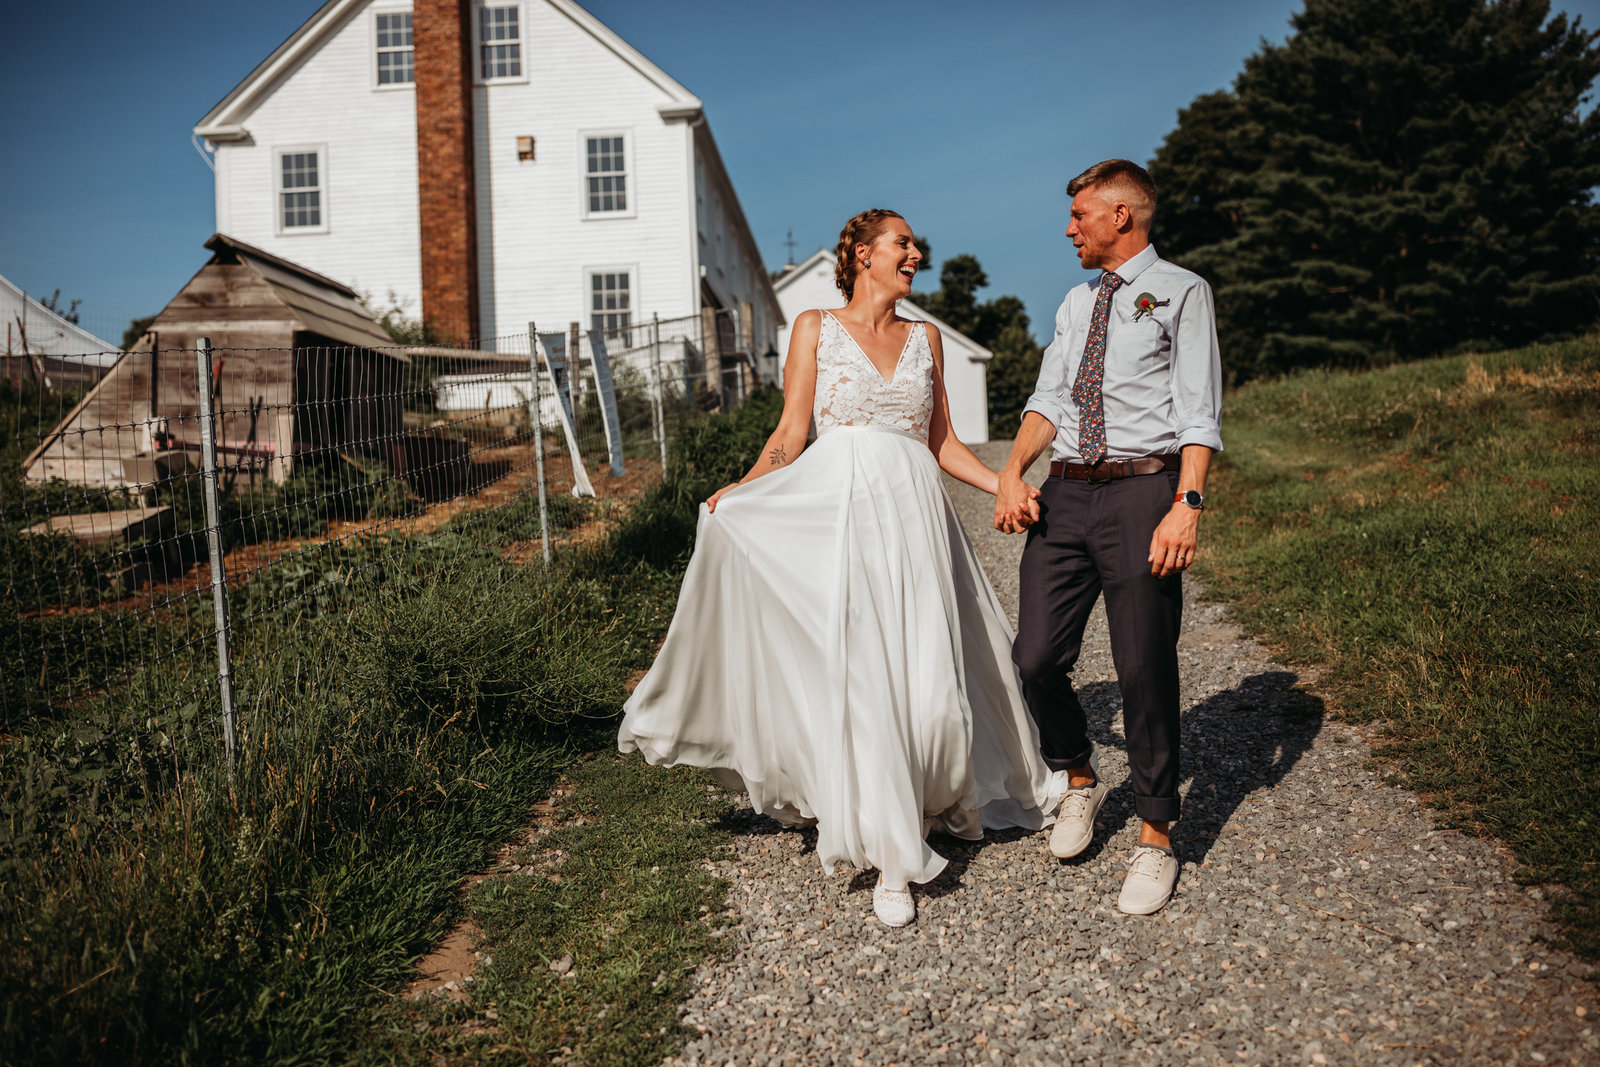 bride and groom walk hand in hand at farm wedding in massachusetts